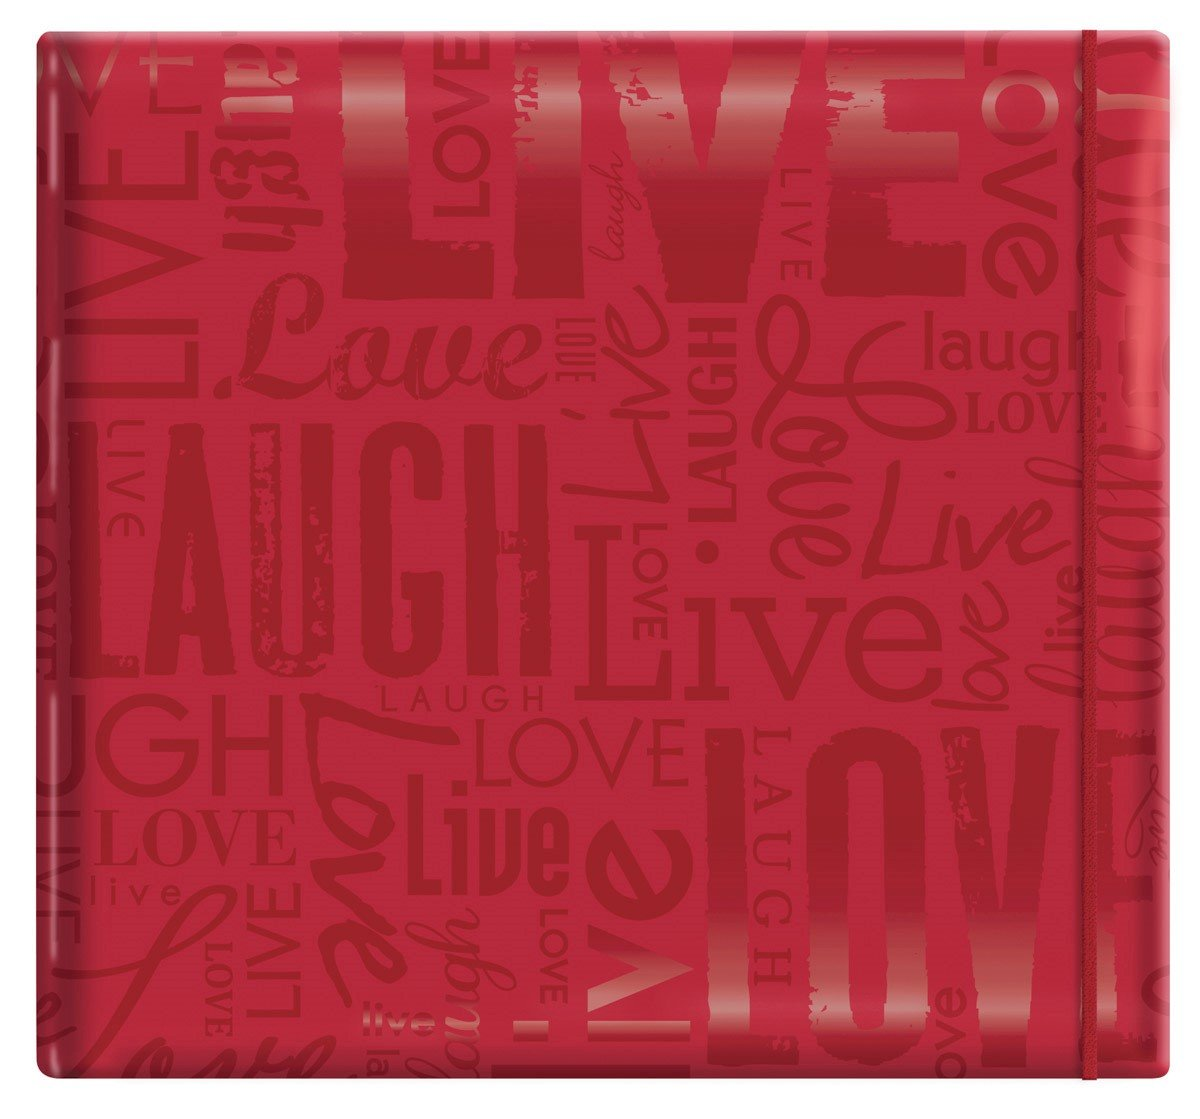 "MCS MBI 13.5x12.5 Inch Embossed Gloss Expressions Scrapbook Album with 12x12 Inch Pages, Red, Embossed ""Live, Laugh, Love"" (848115)"